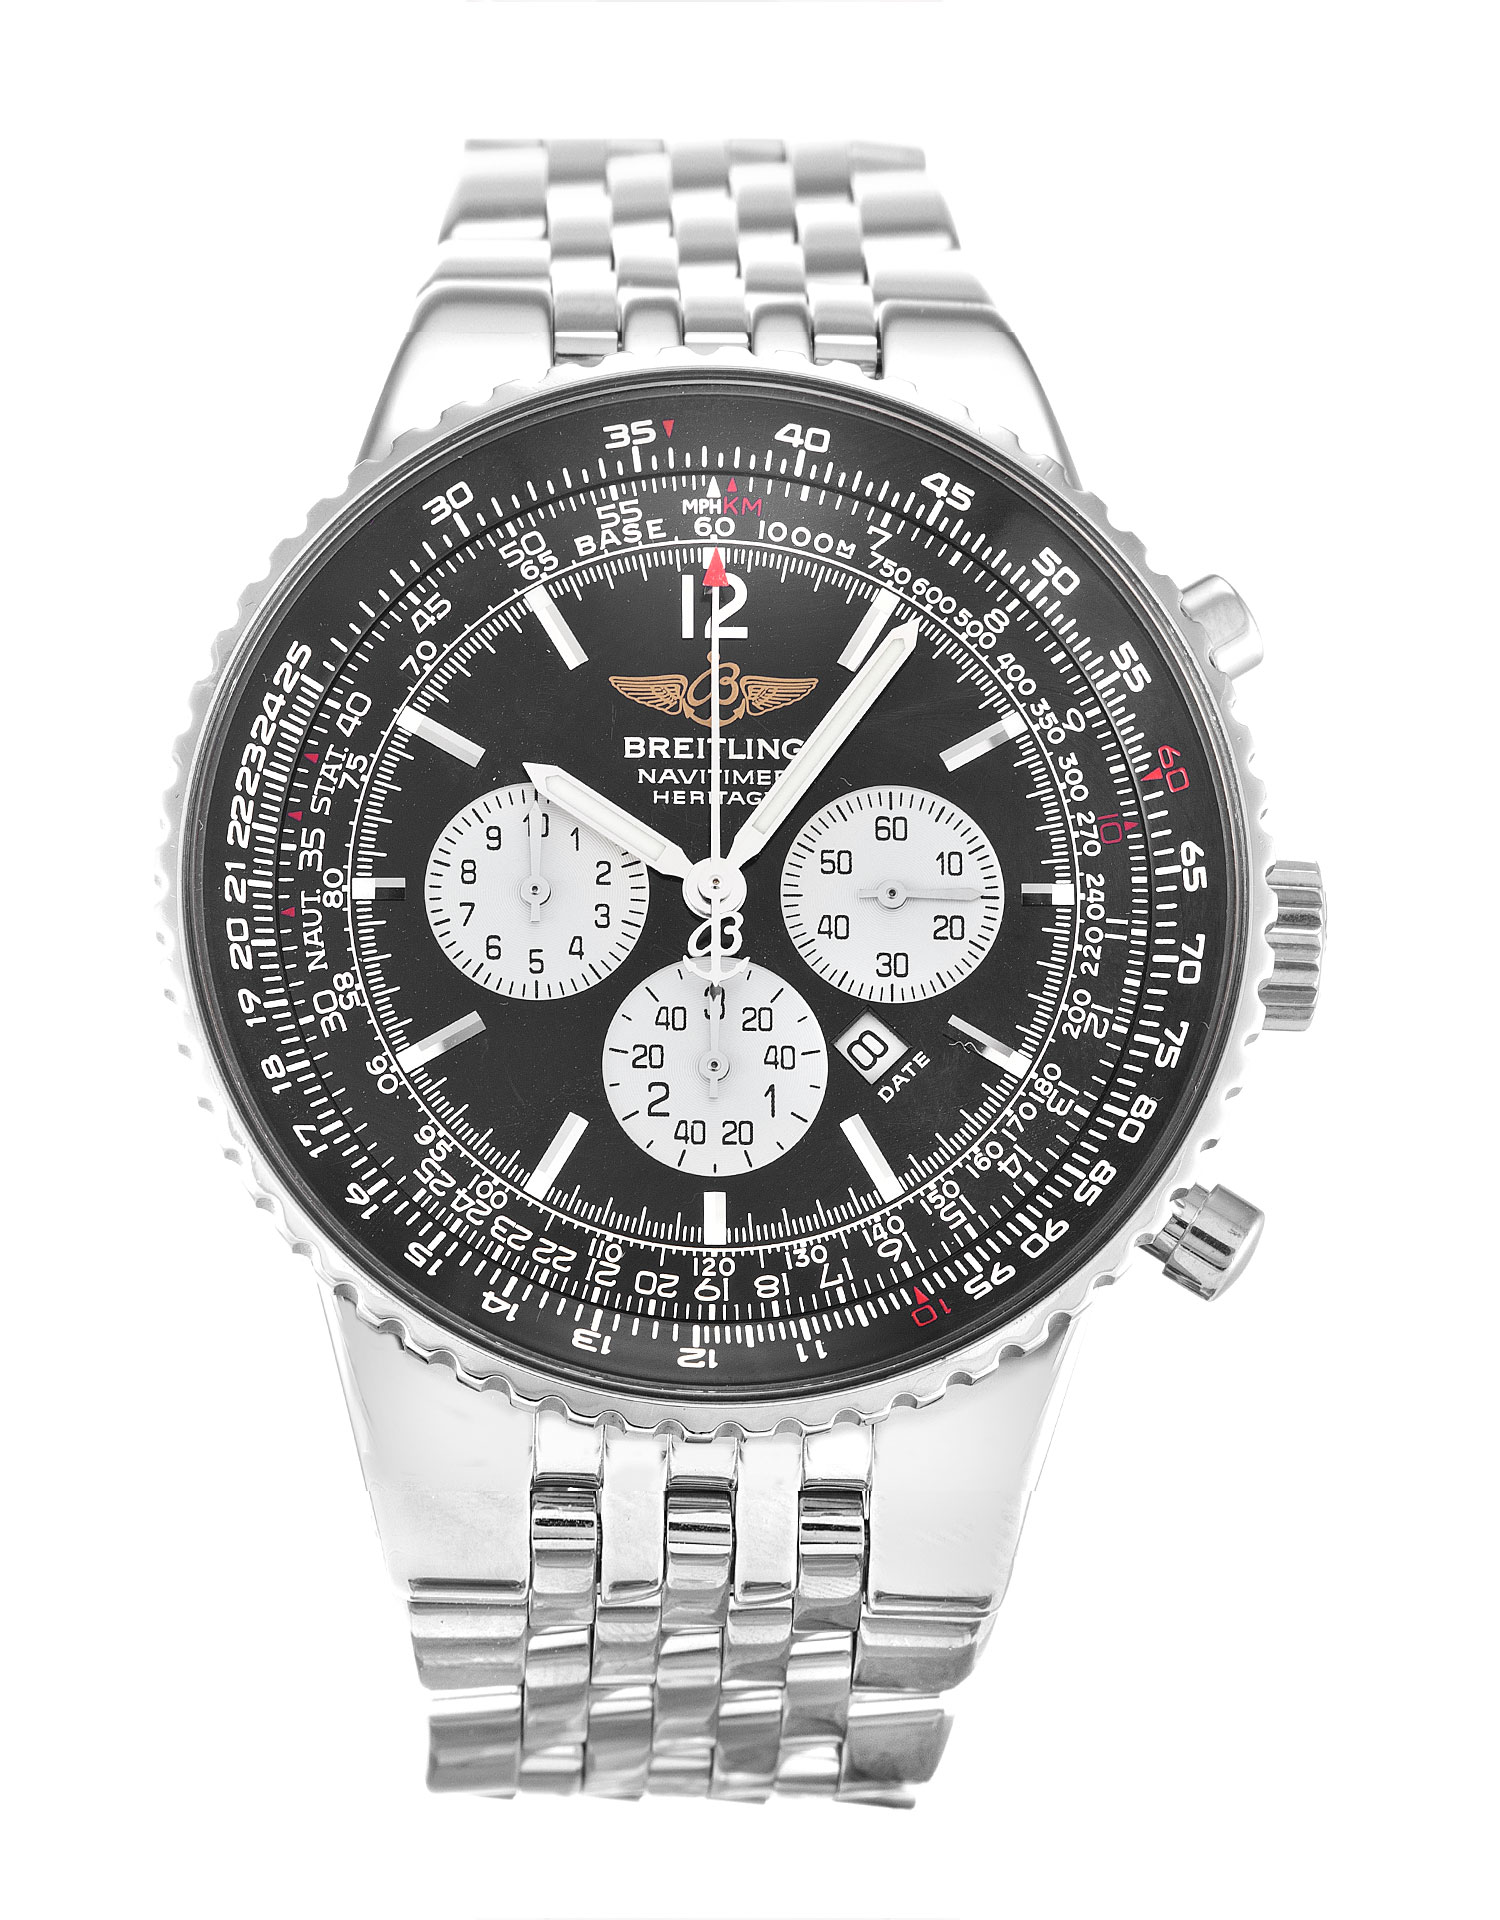 Breitling Heritage A35350